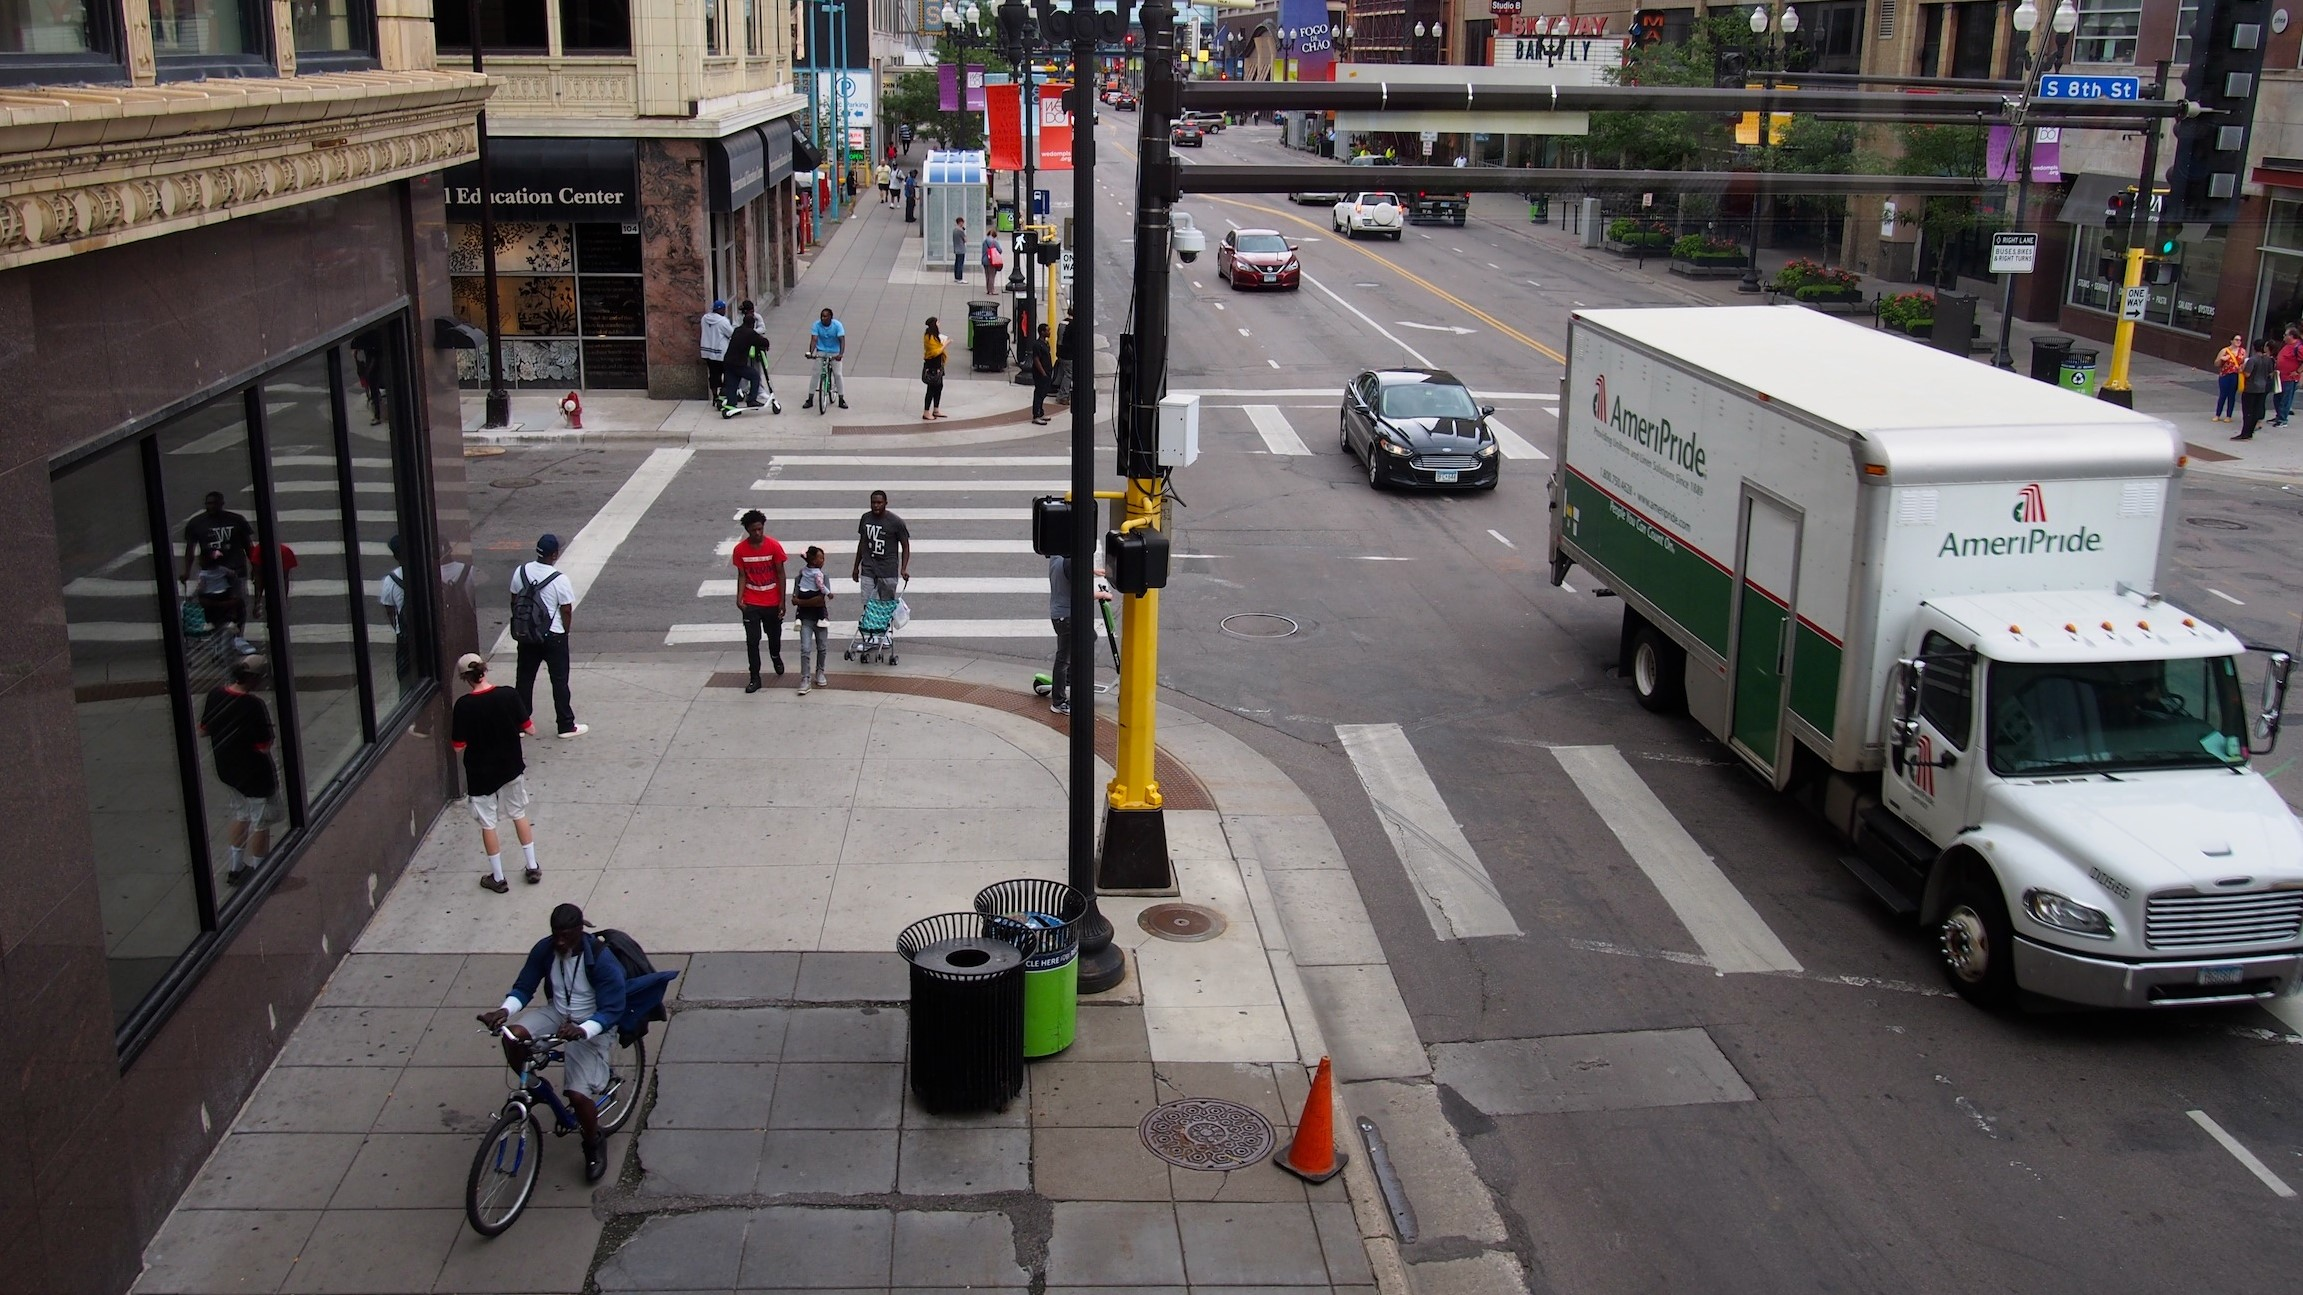 In Downtown Minneapolis, people are moving, standing, scooting, biking, driving, and waiting for transit on a 5-lane road that crosses South 8th Street.